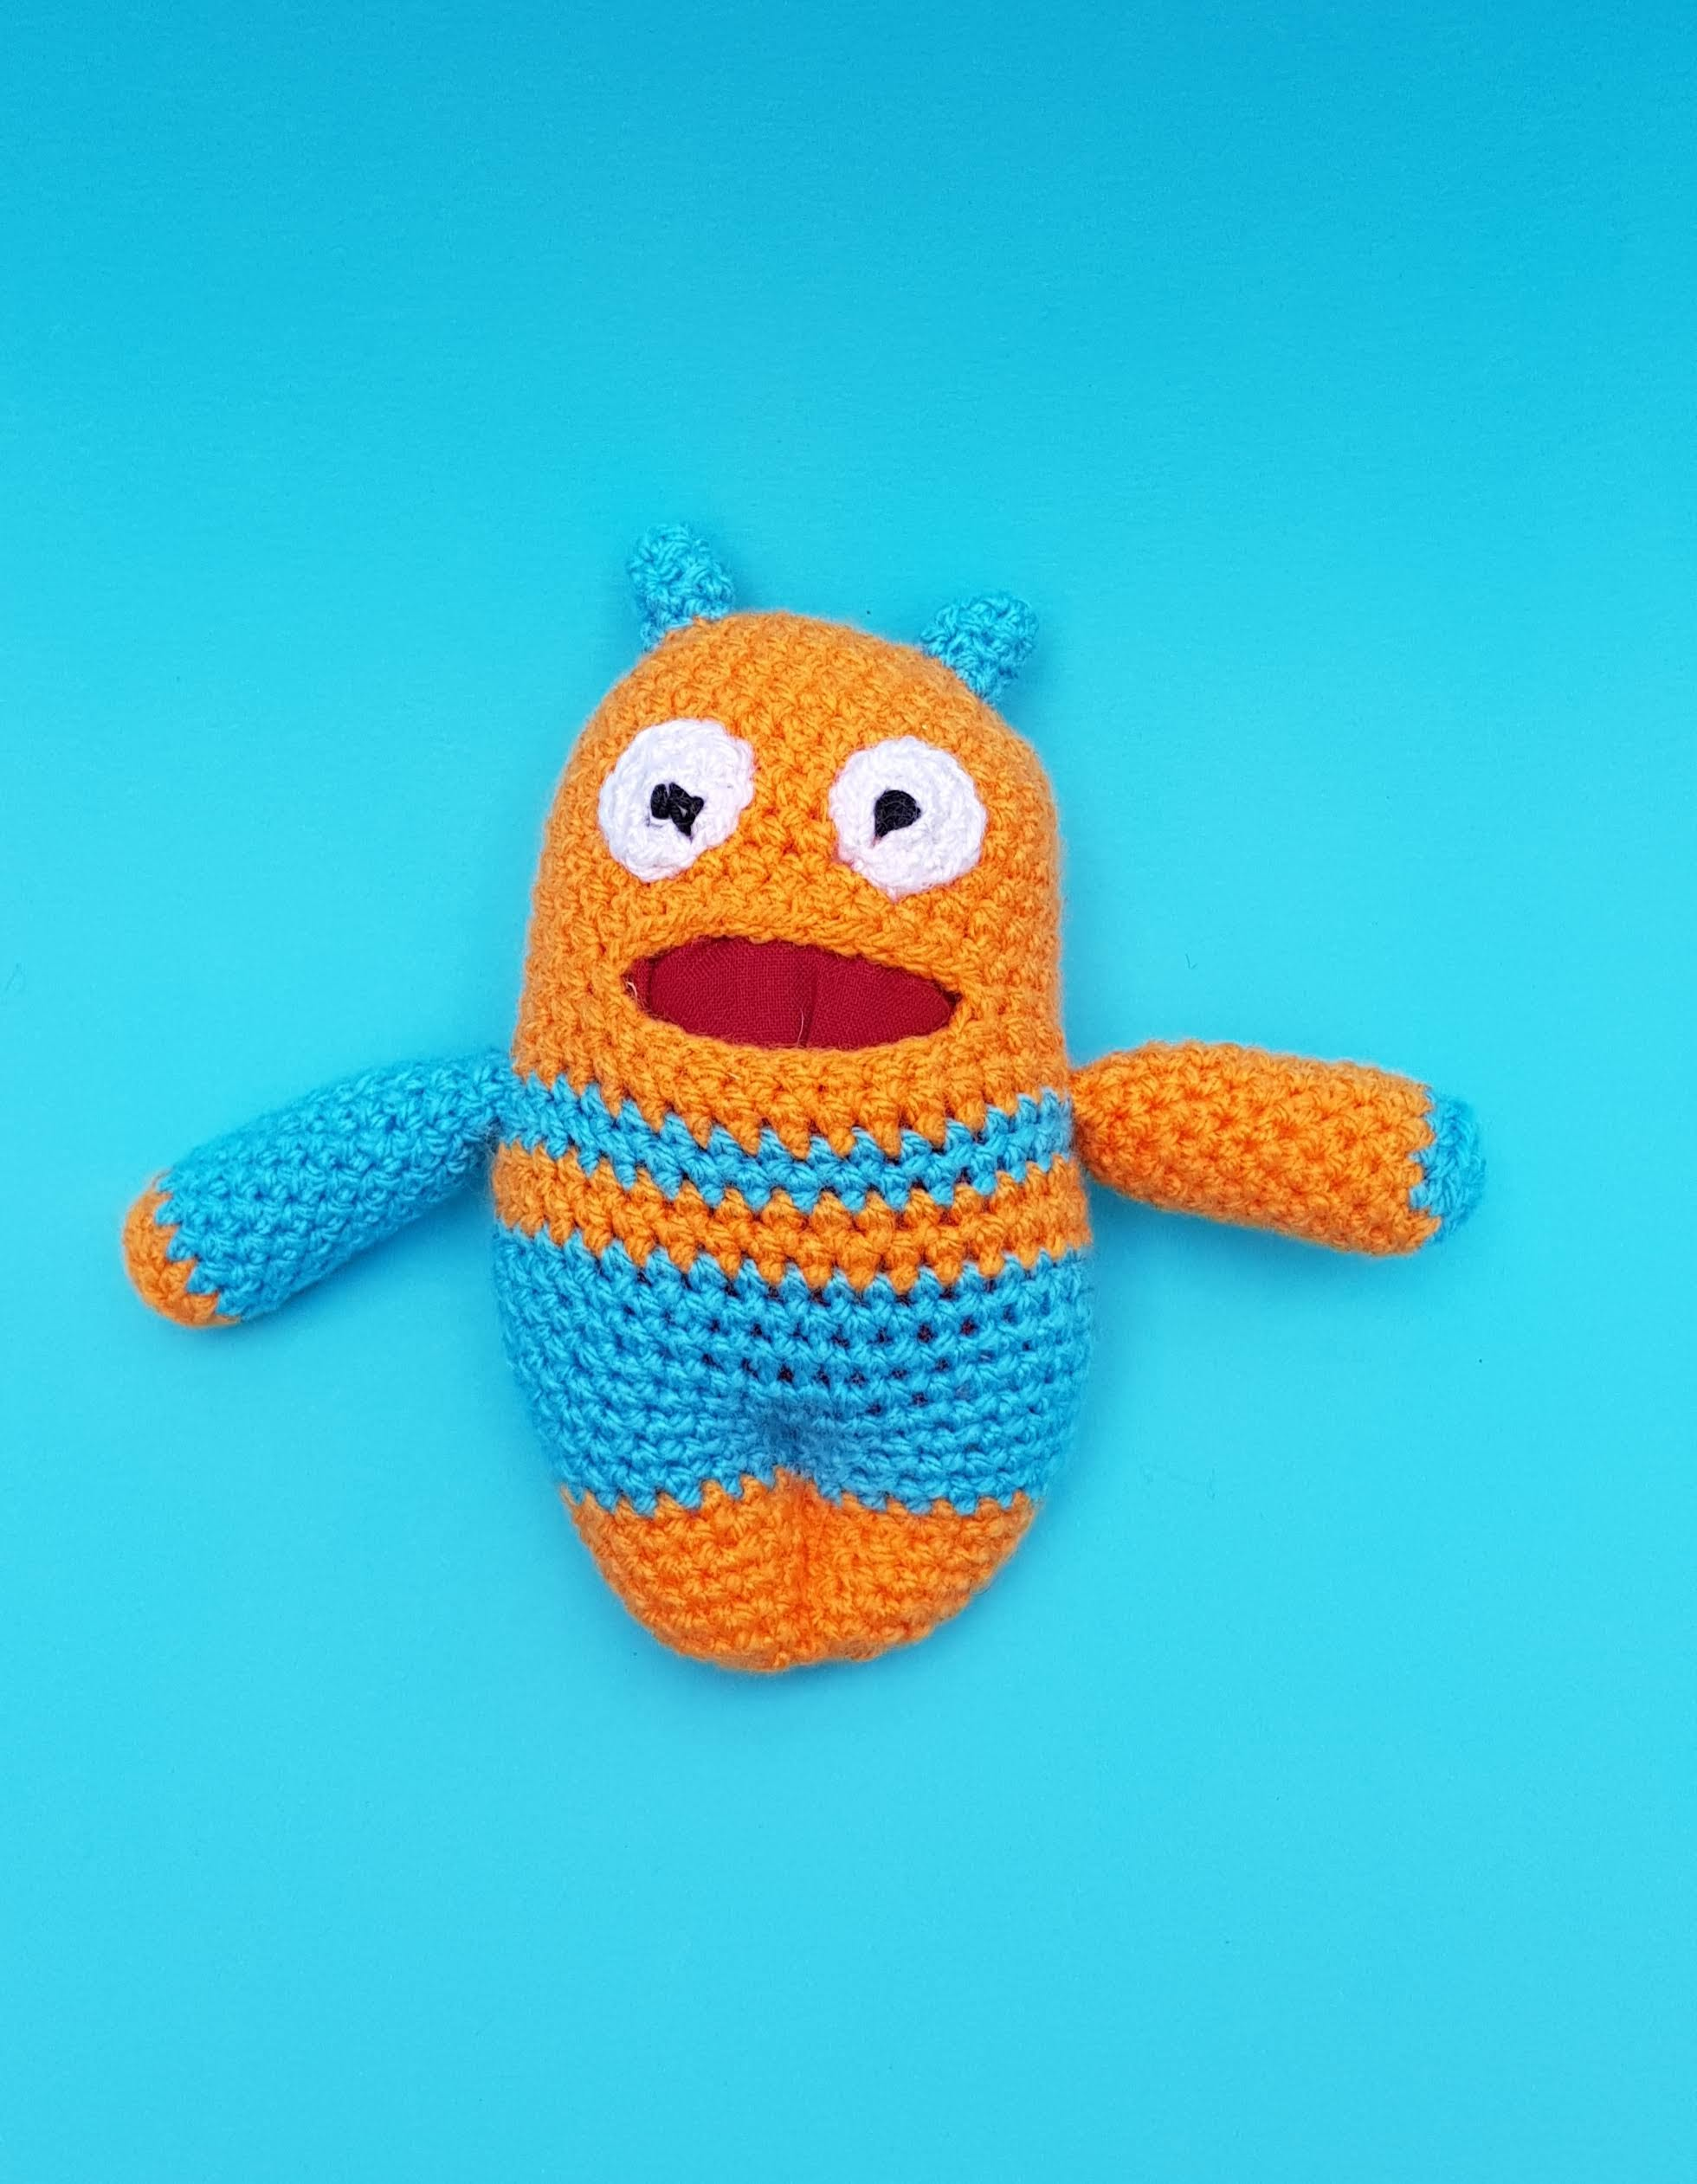 DIY amigurumi kit to crochet your own charming squirrel with ... | 2523x1960